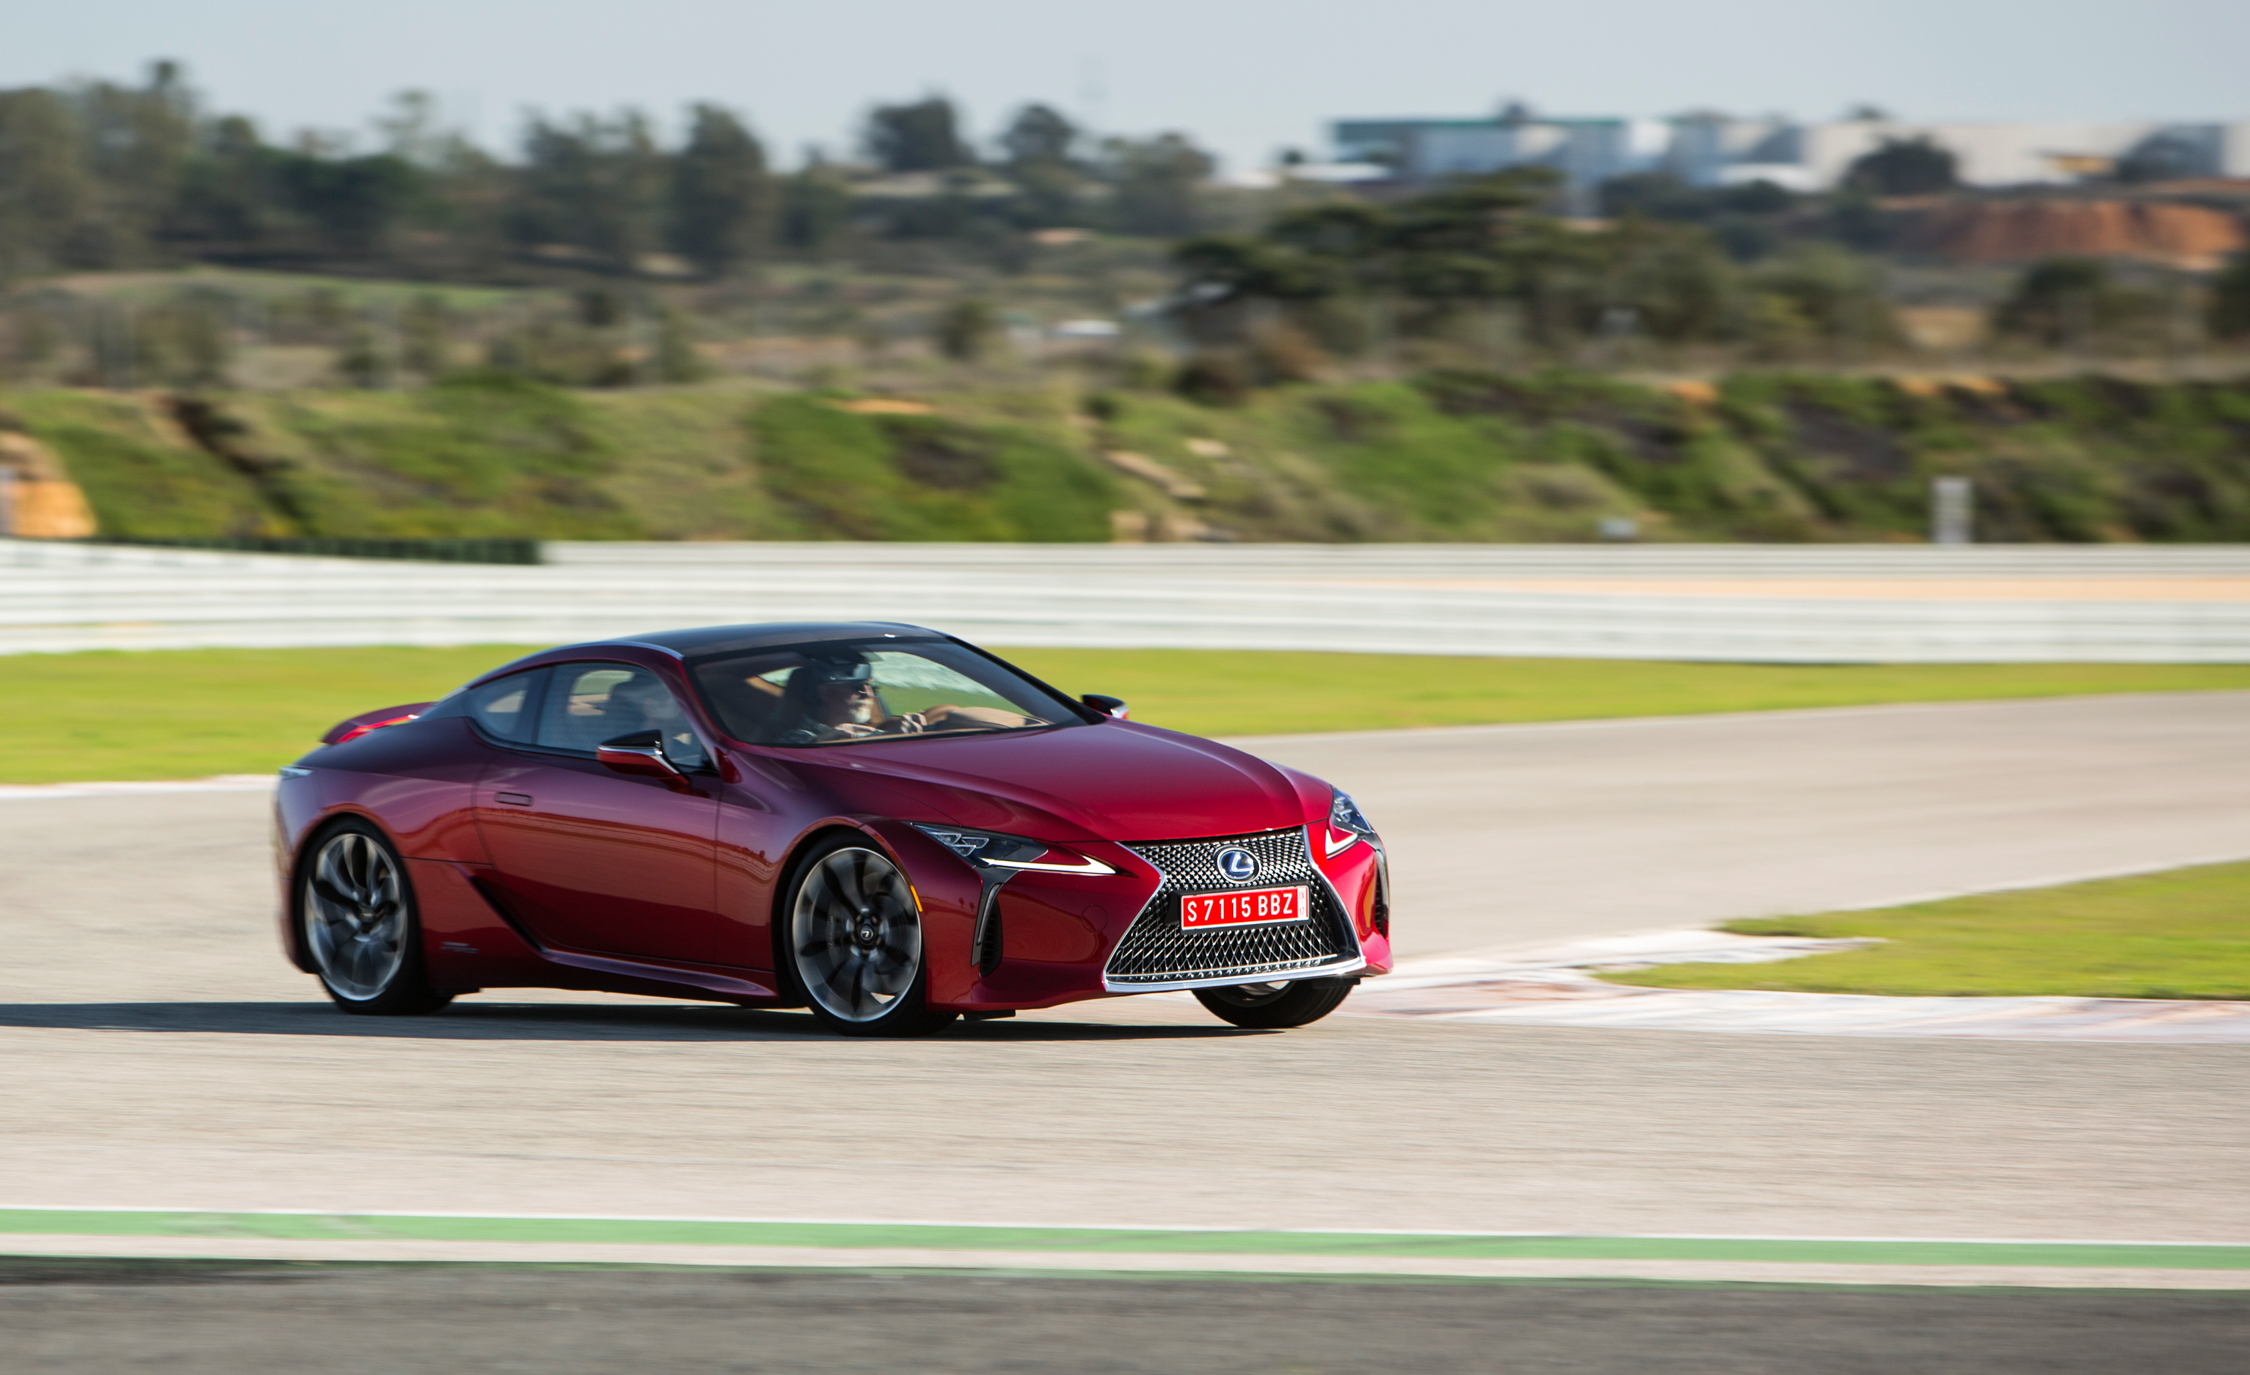 2018 Lexus Lc 500 Red Test Drive (View 3 of 84)